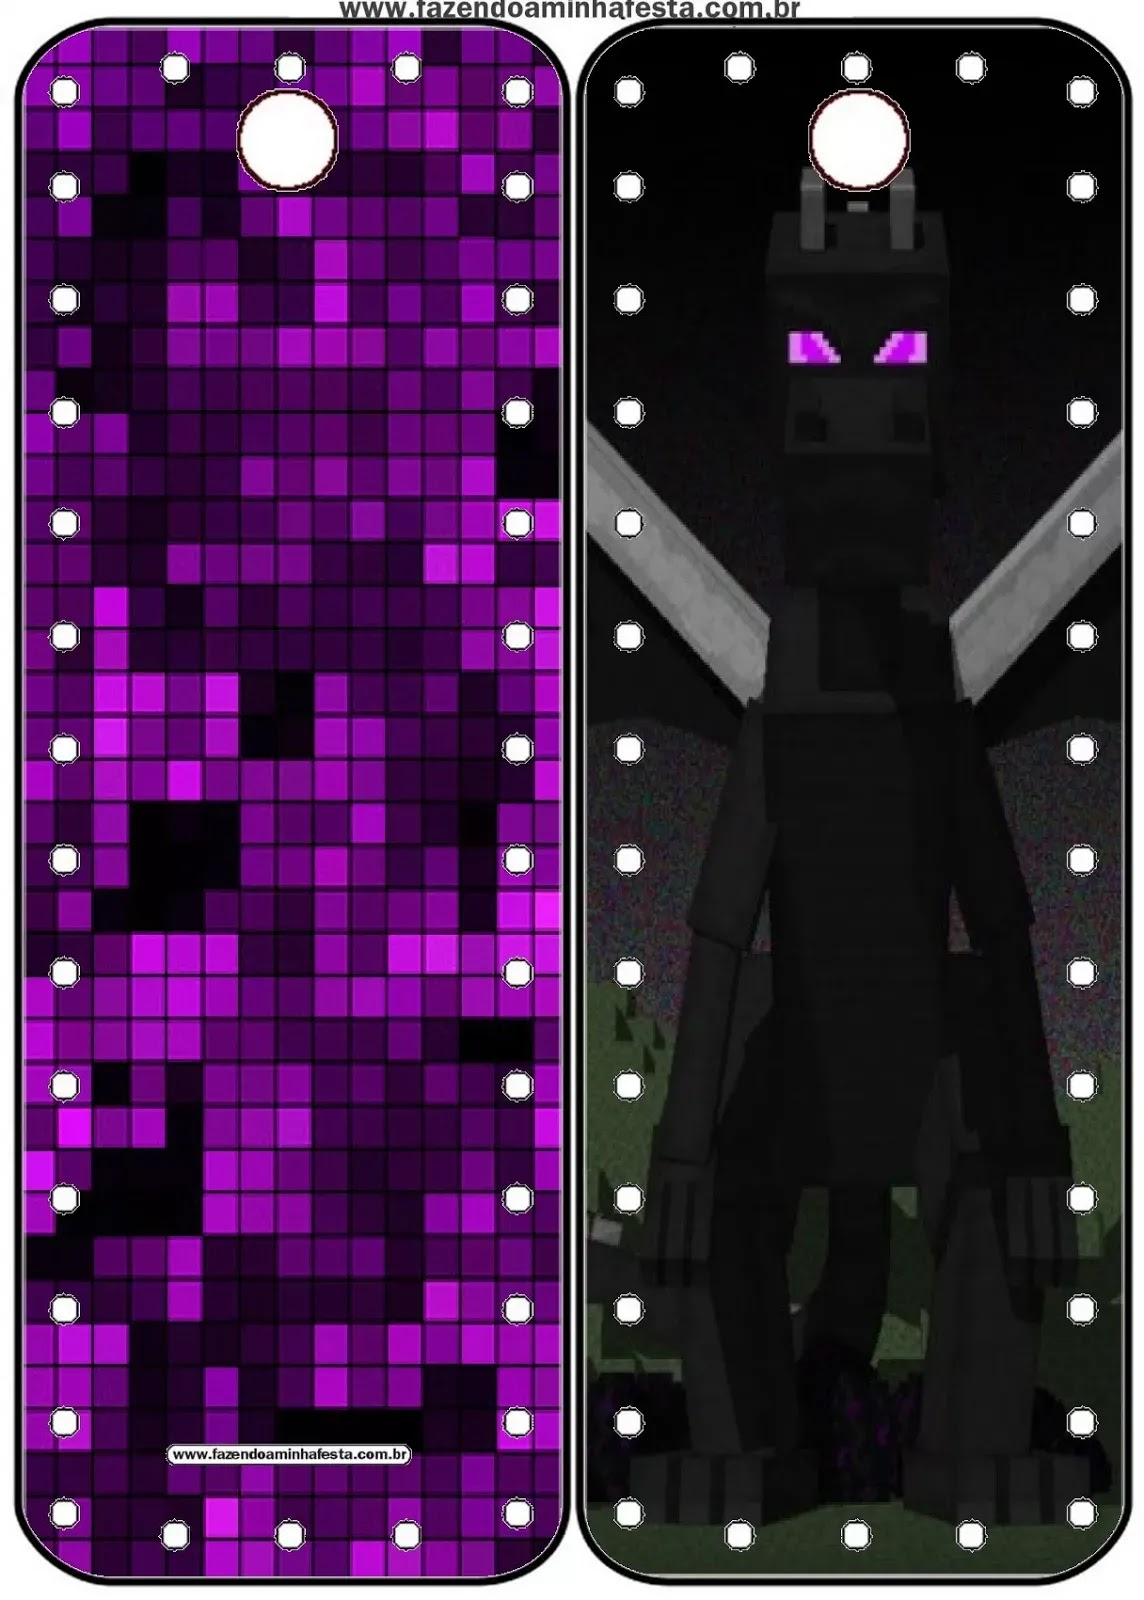 graphic relating to Minecraft Bookmarks Printable identify Pixel Gum 3D, Roblox and Minecraft Cost-free Social gathering Printables